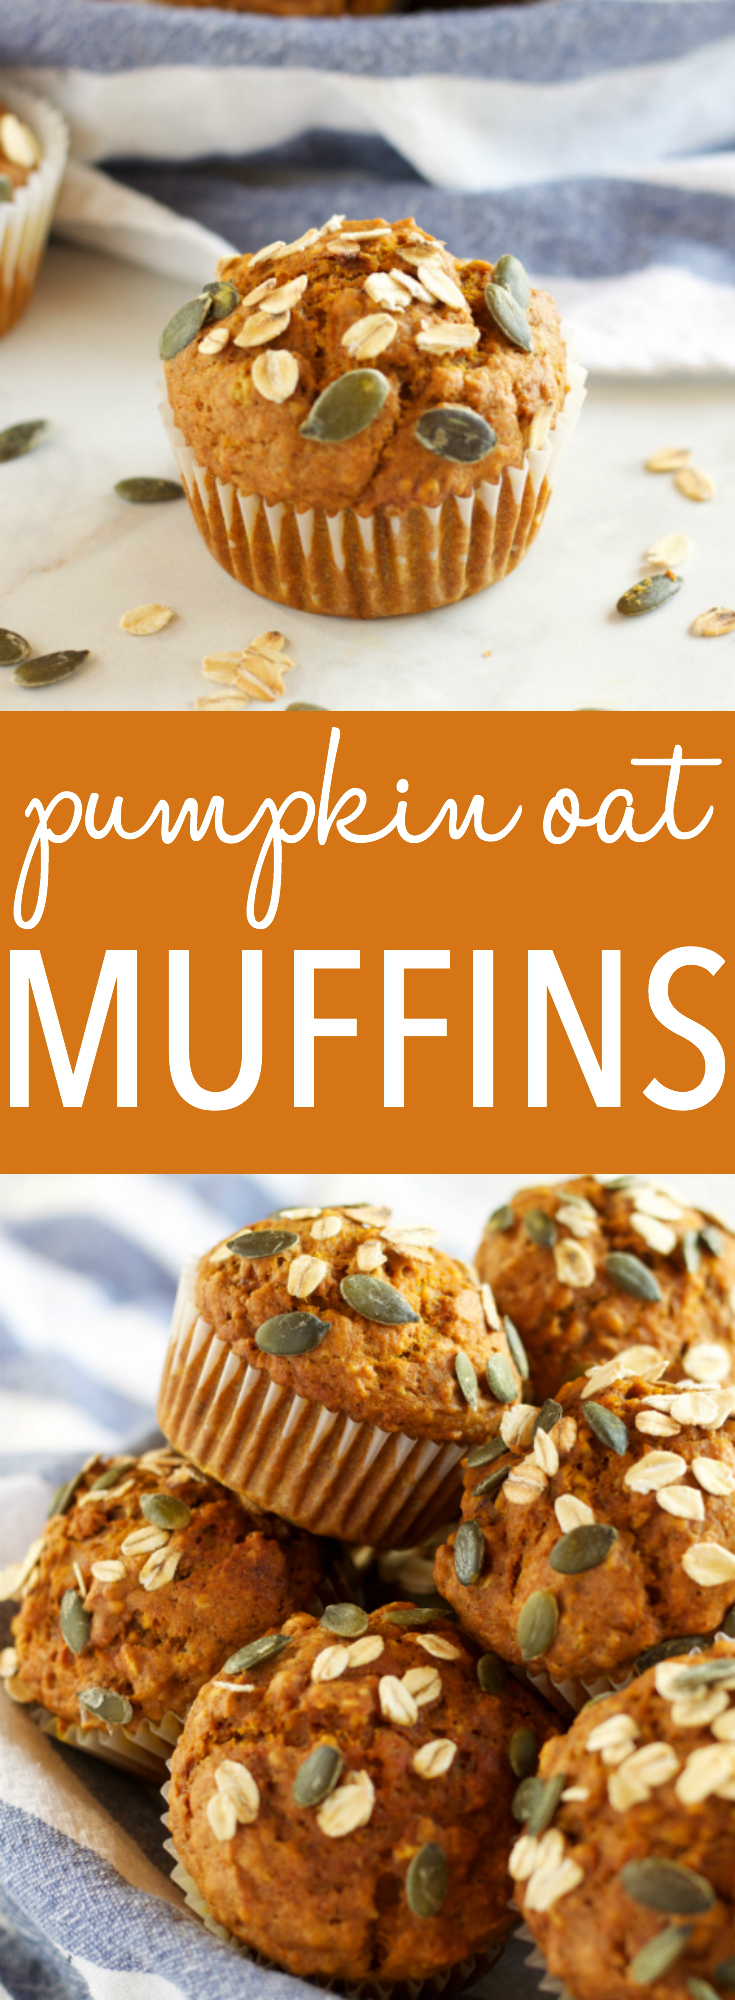 These Healthy Pumpkin Oat Muffins are low in fat and sugar, but they're so moist and flavorful because they're packed with pumpkin and applesauce! Recipe from thebusybaker.ca #pumpkinspice via @busybakerblog